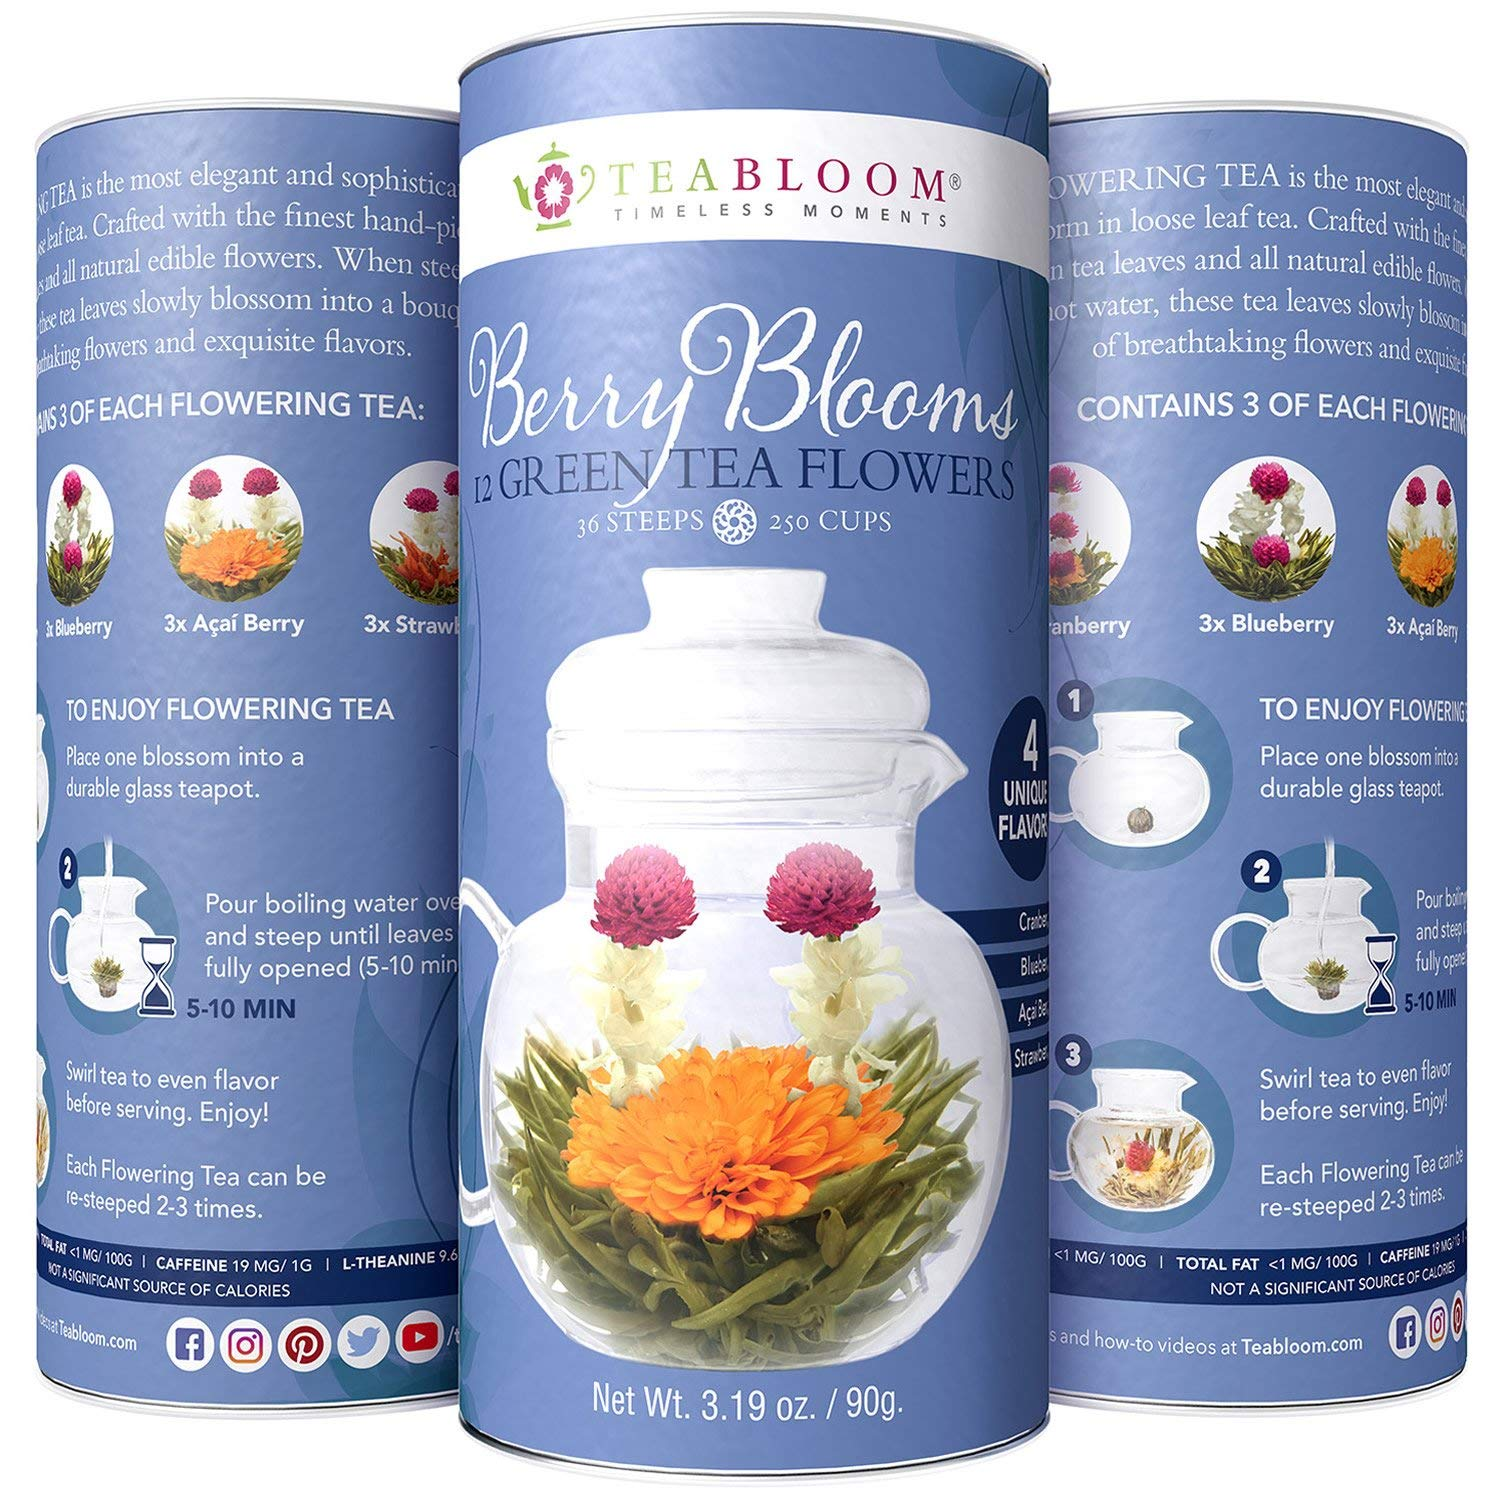 Teabloom Berry Flowering Teas - 12 Assorted, Delicious Berry Blooming Teas - Fresh, Handpicked Ingredients - Premium Green Tea + Cranberry, Blueberry, Acai Berry & Strawberry